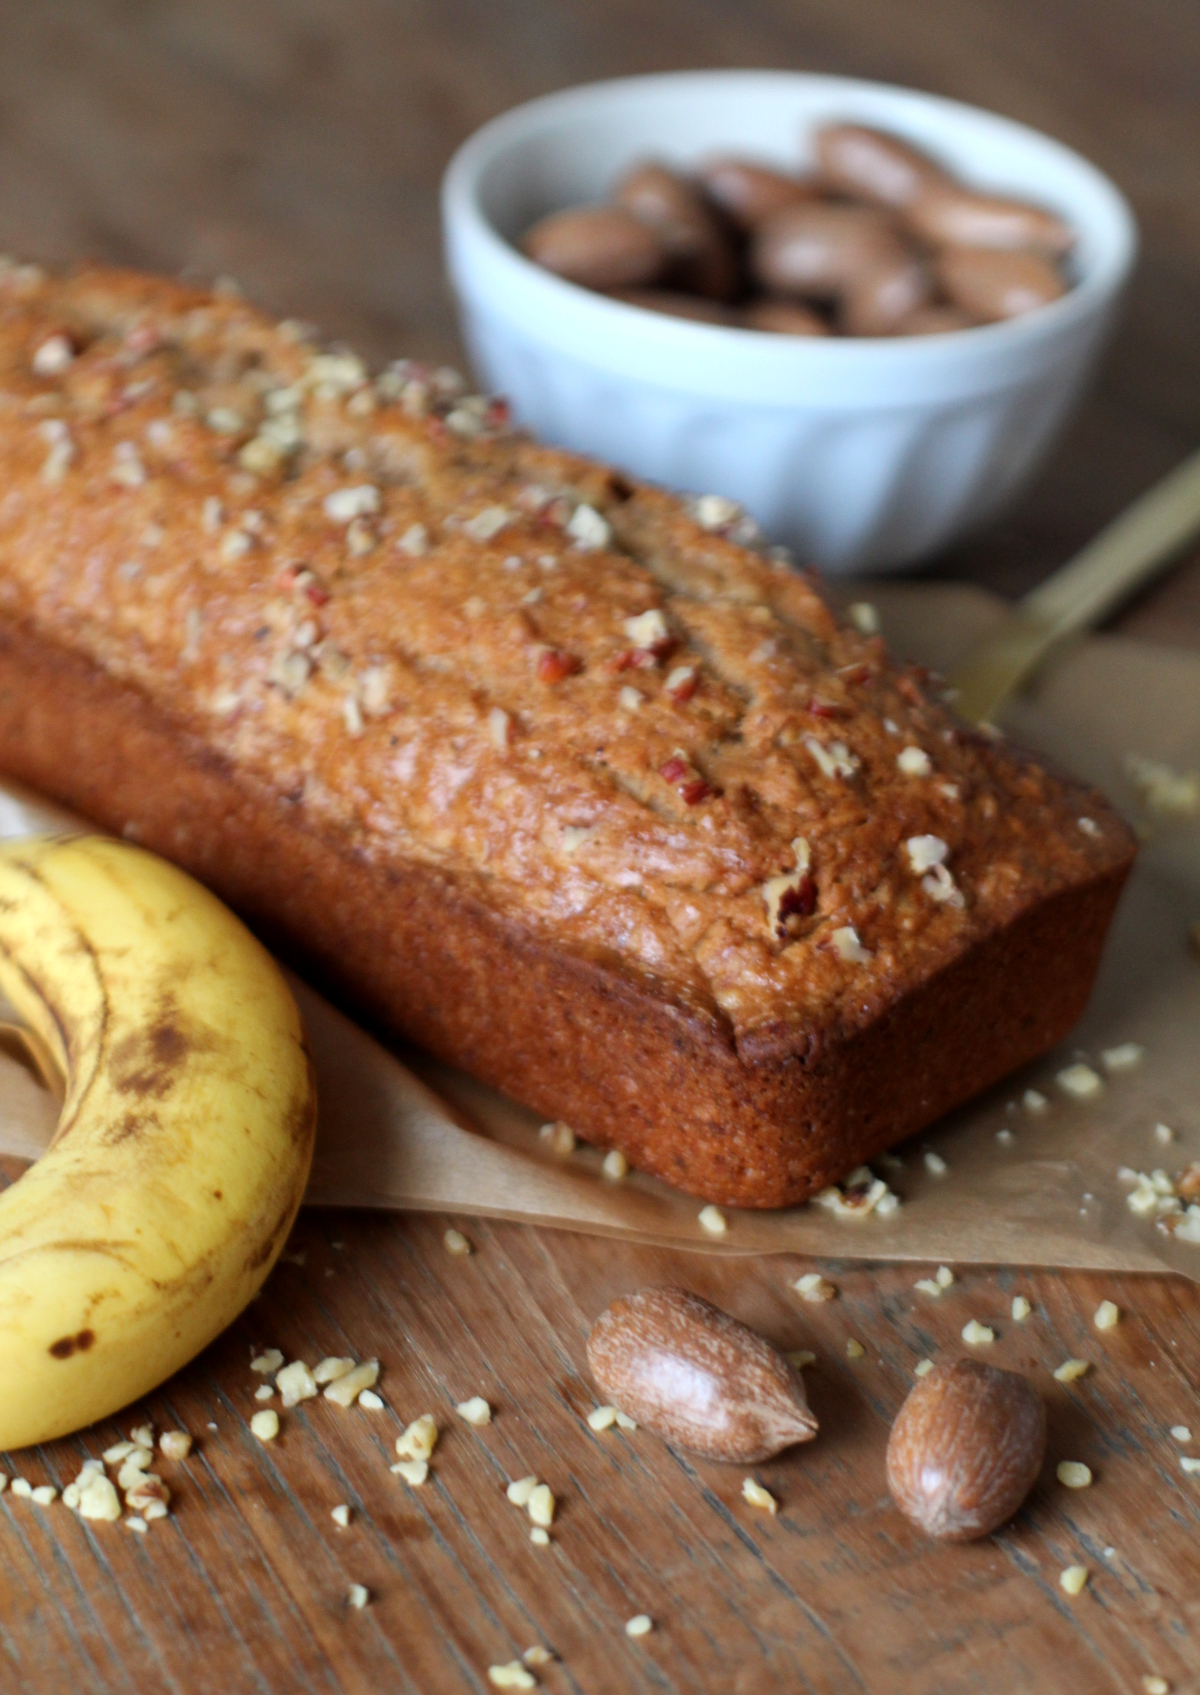 RECIPE: Banana-Nut-Bread